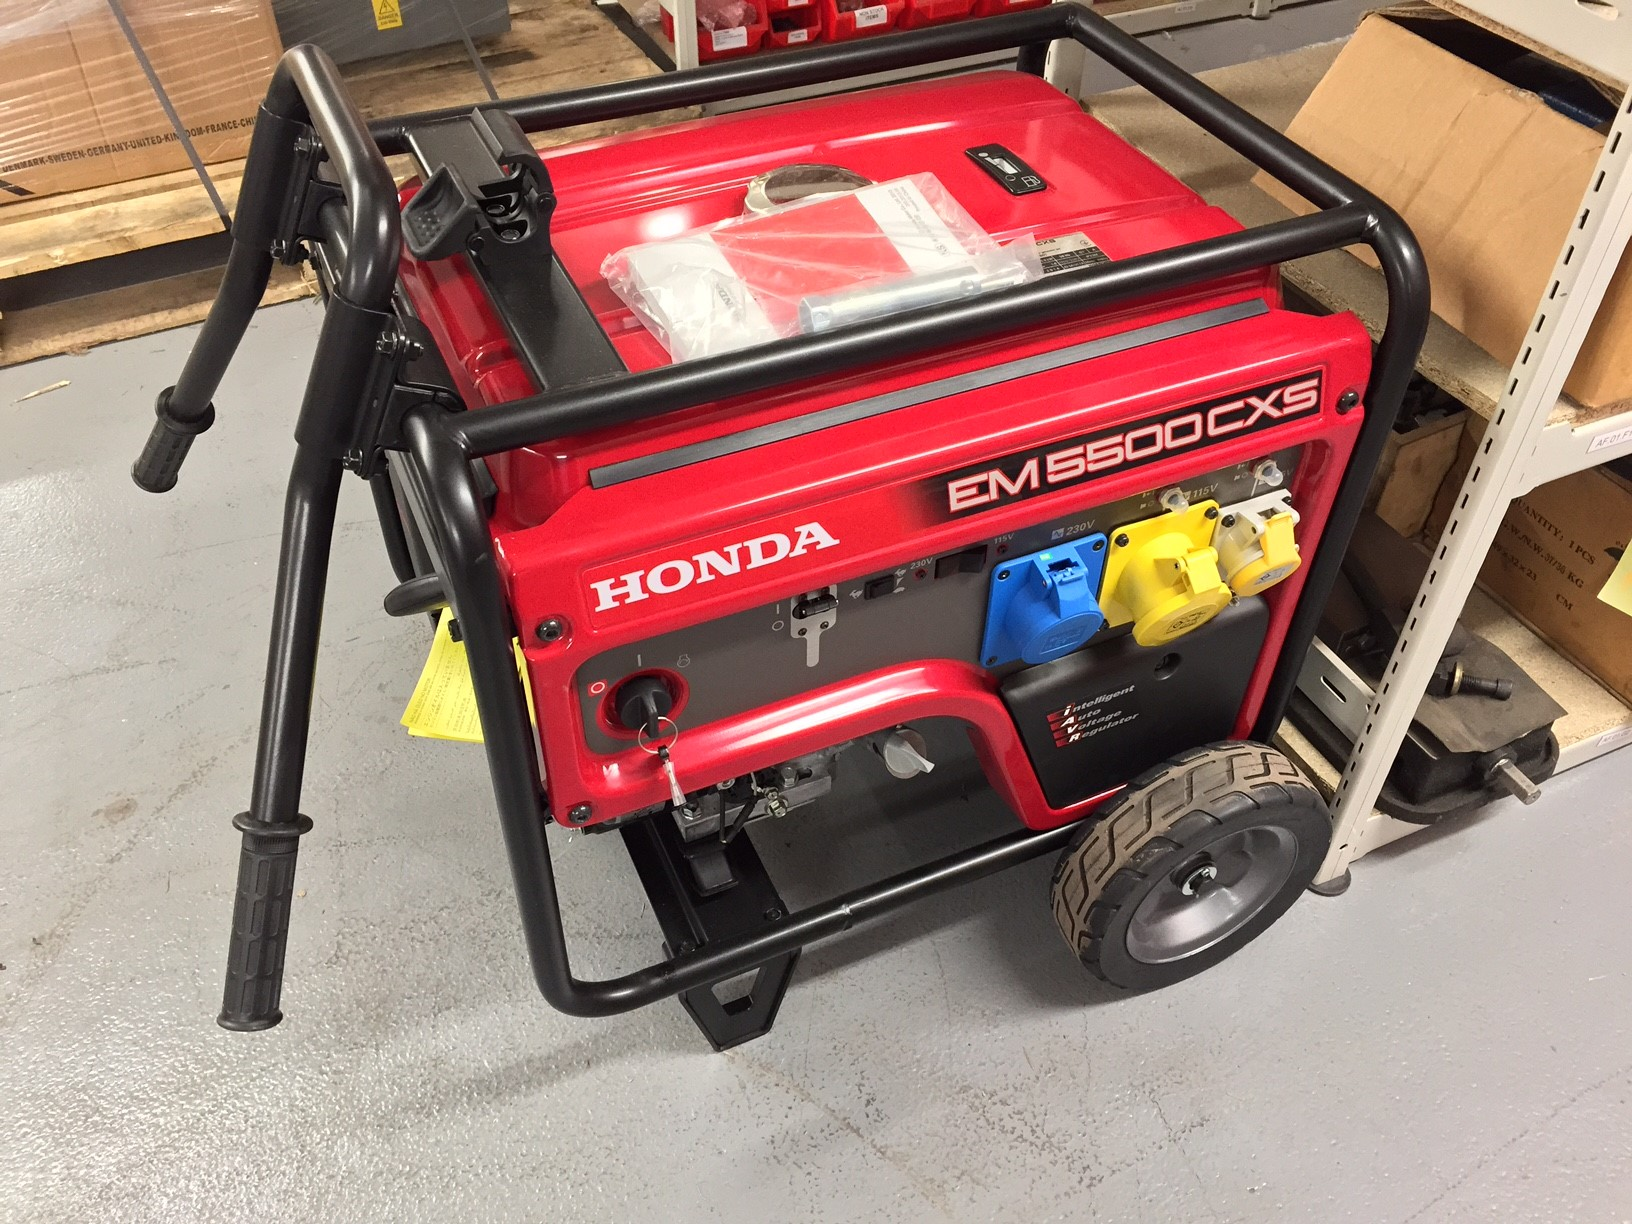 The Honda EM5500CXS115v/230v generator features  5500W power output, AVR Output,  Electric start 4-stoke engine  Unique oil alert system, 70dBa